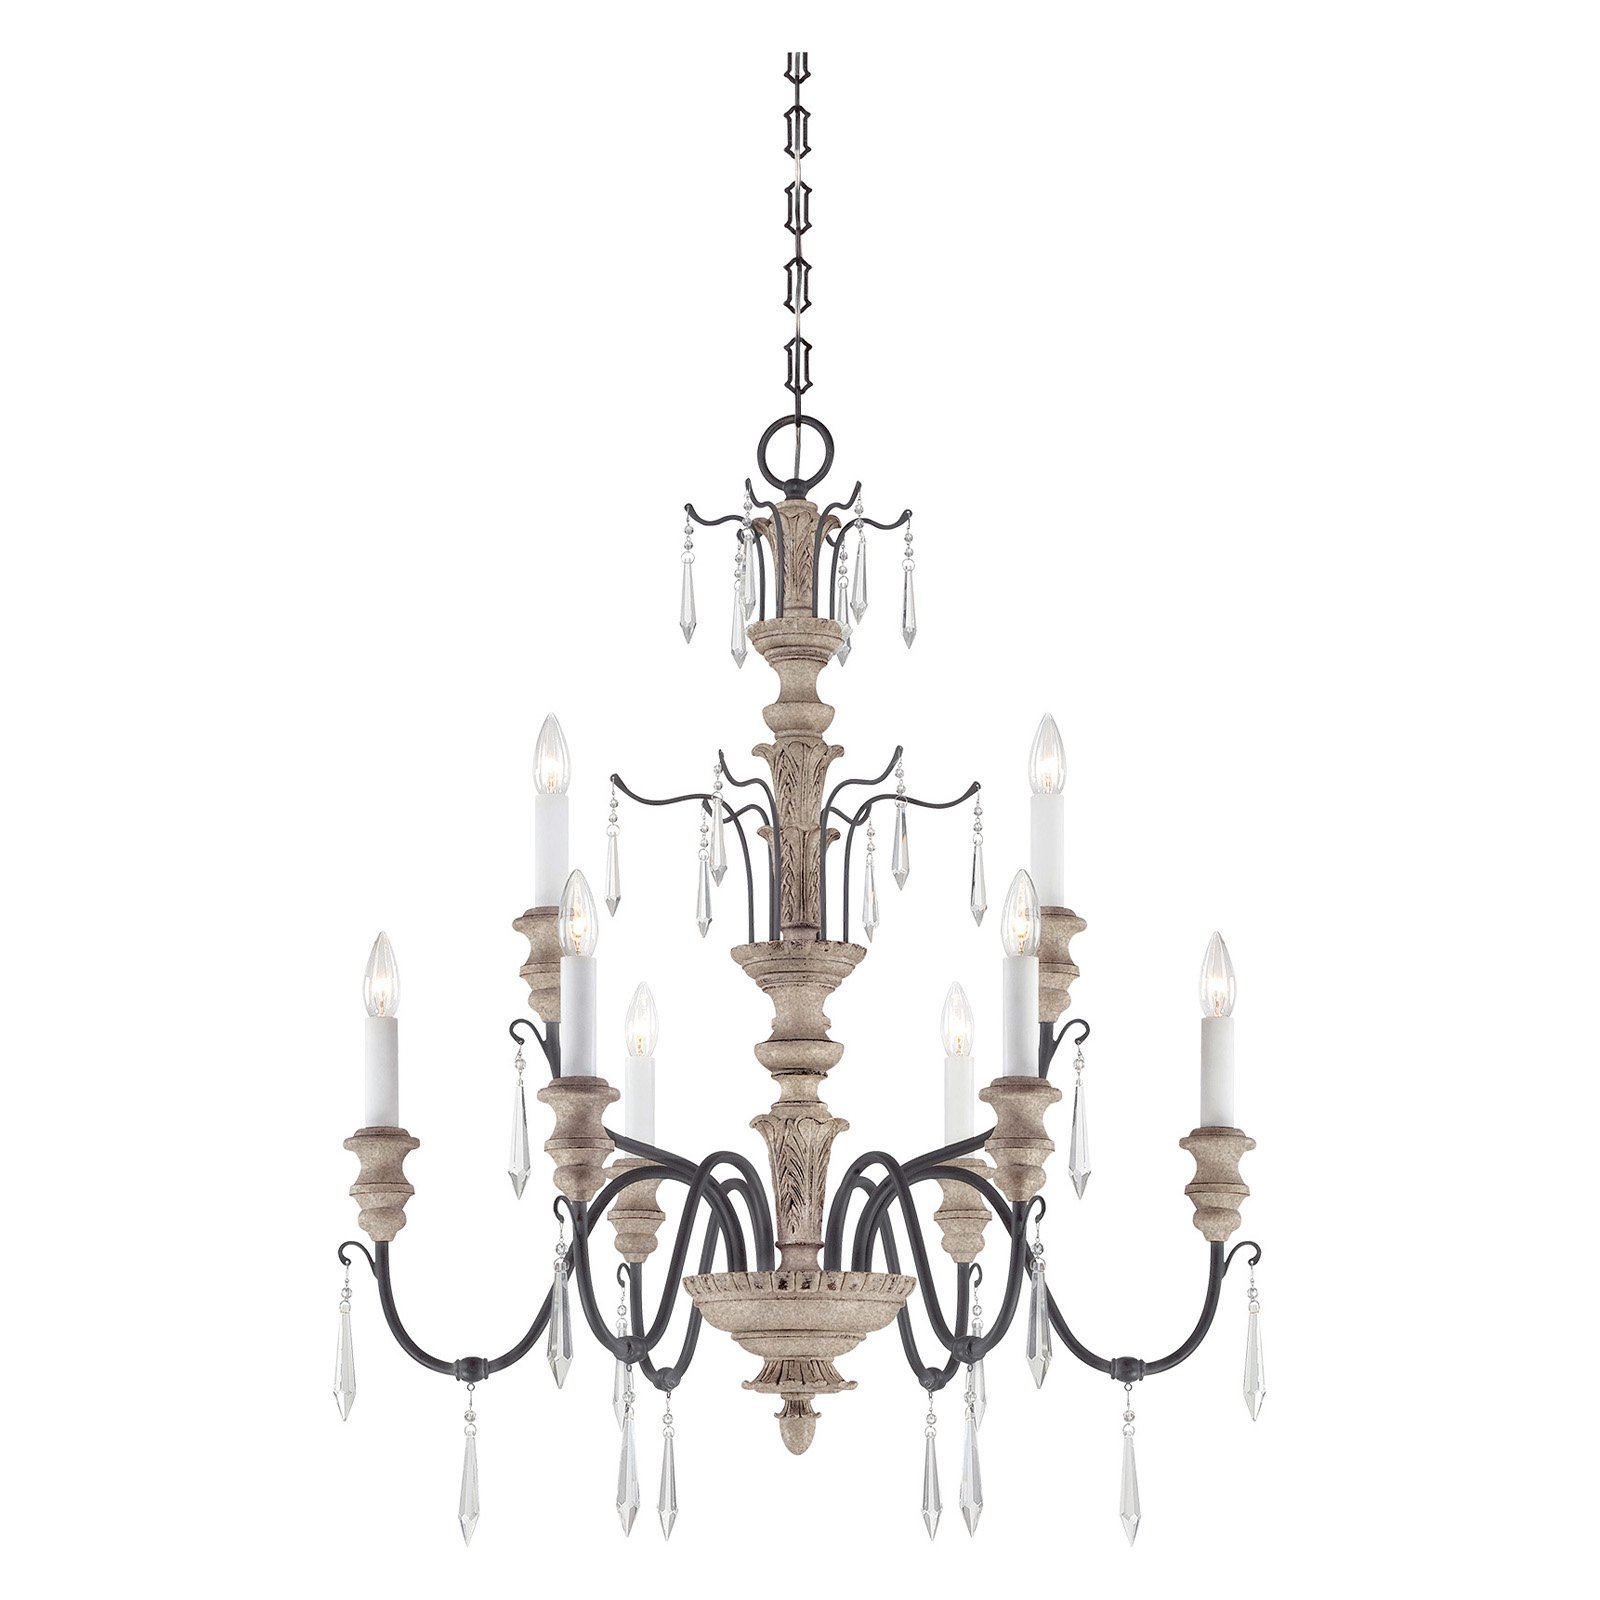 Savoy House Madeliane 1 4341 6 192 Chandelier | Products In With Regard To Bouchette Traditional 6 Light Candle Style Chandeliers (View 9 of 30)